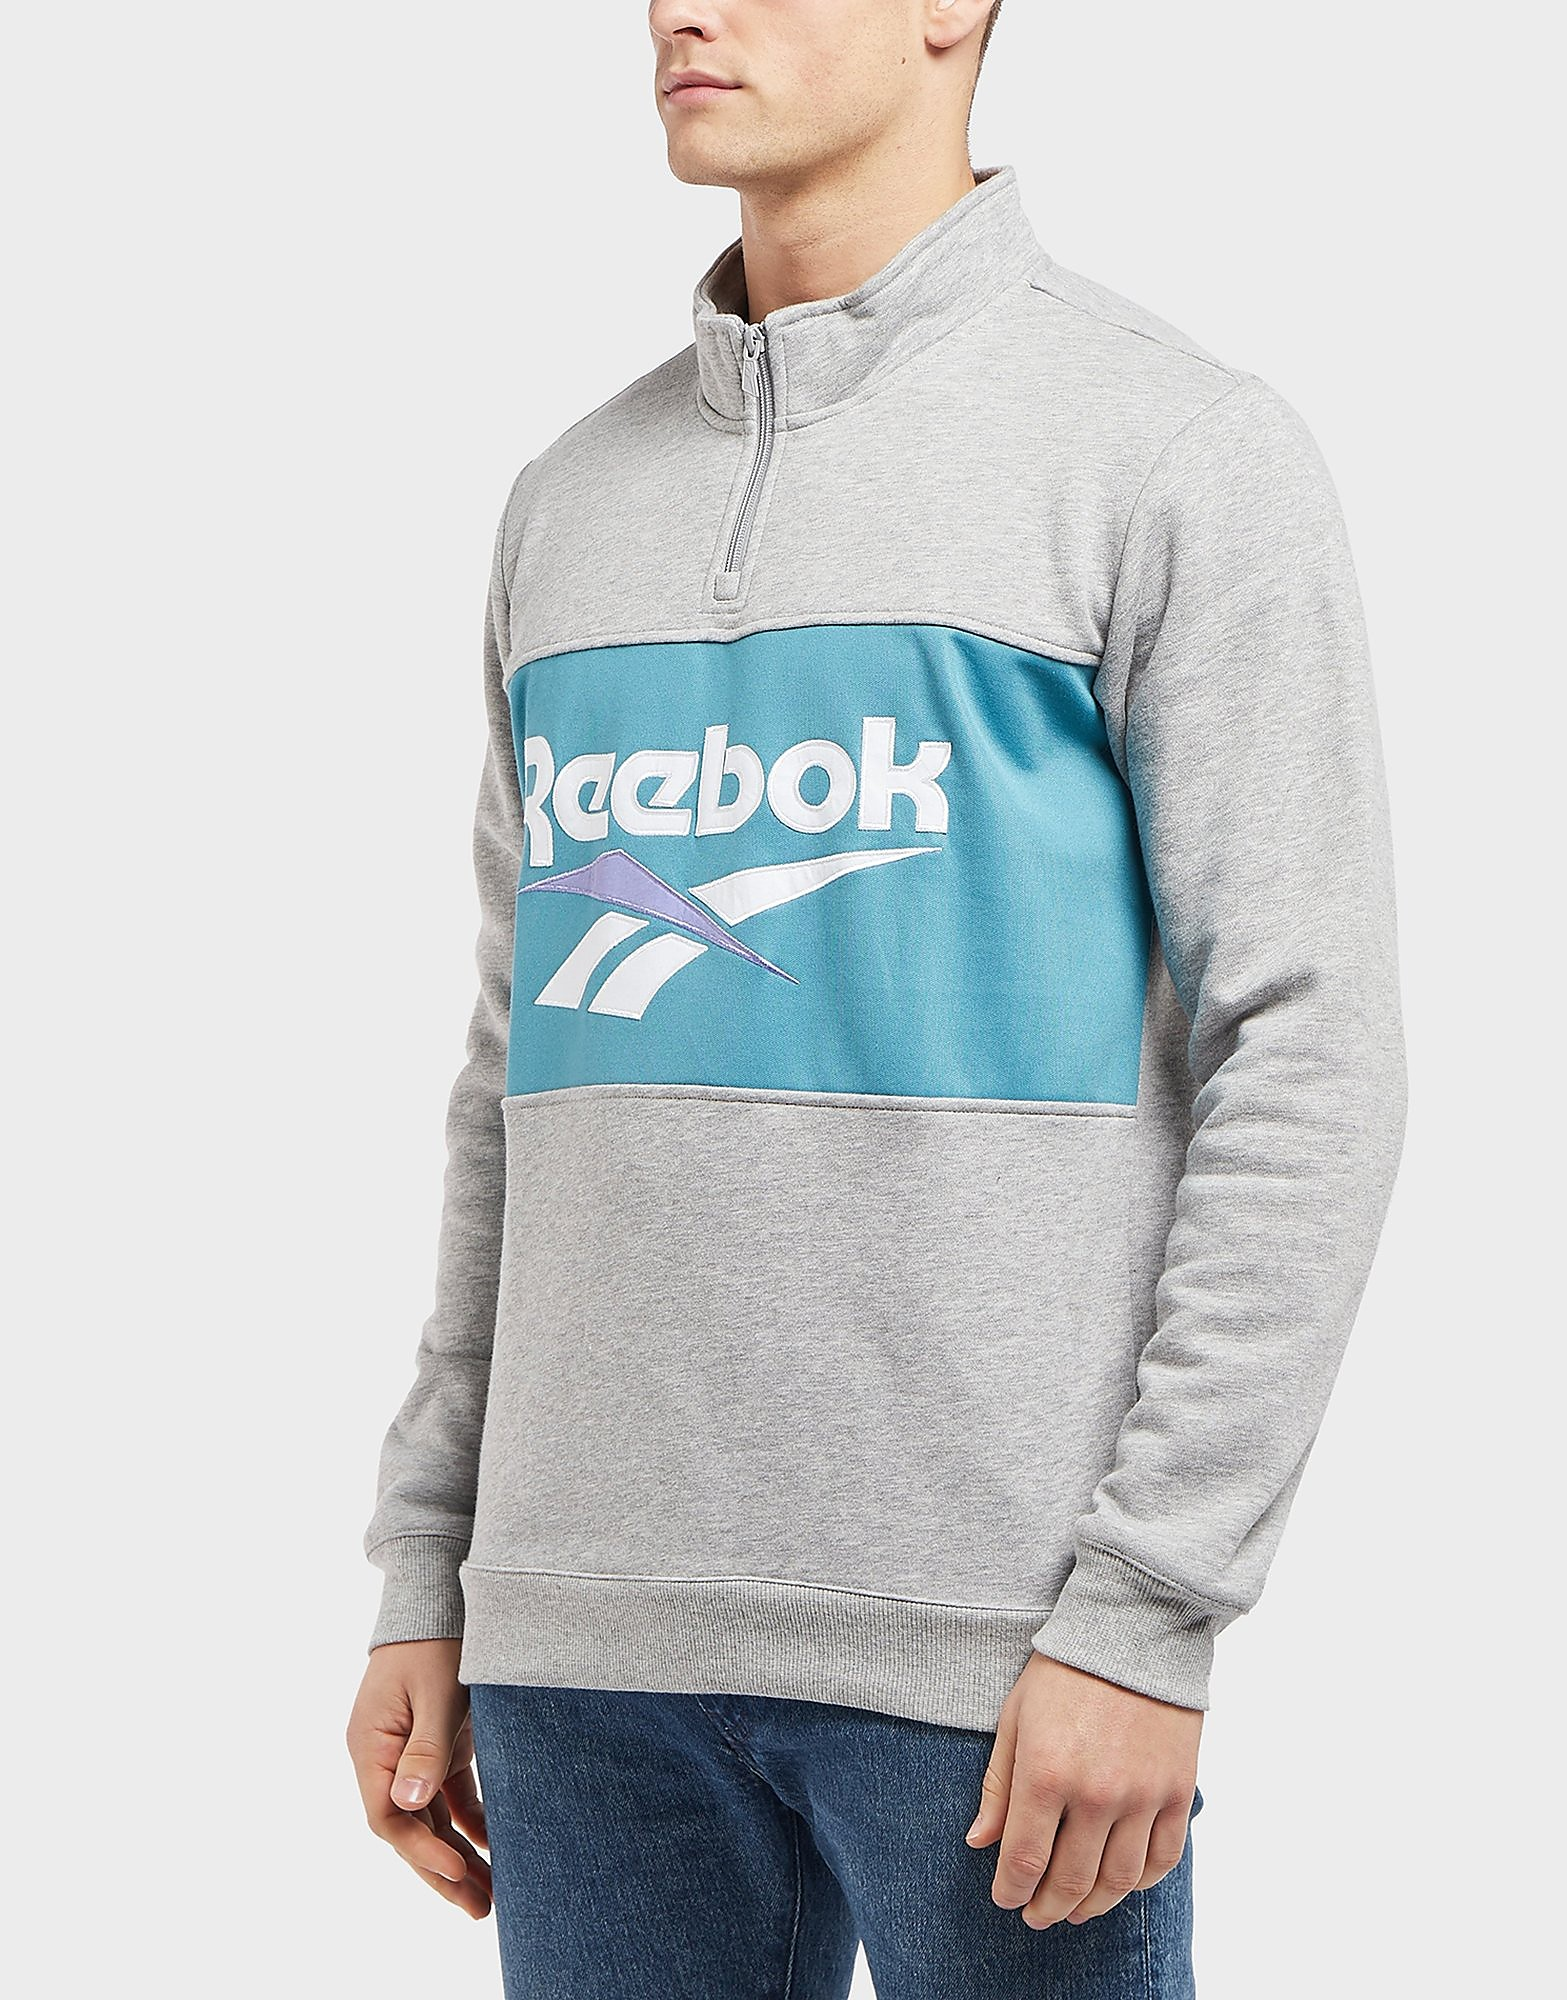 Reebok Vector 1/2 Zip Fleece Sweatshirt